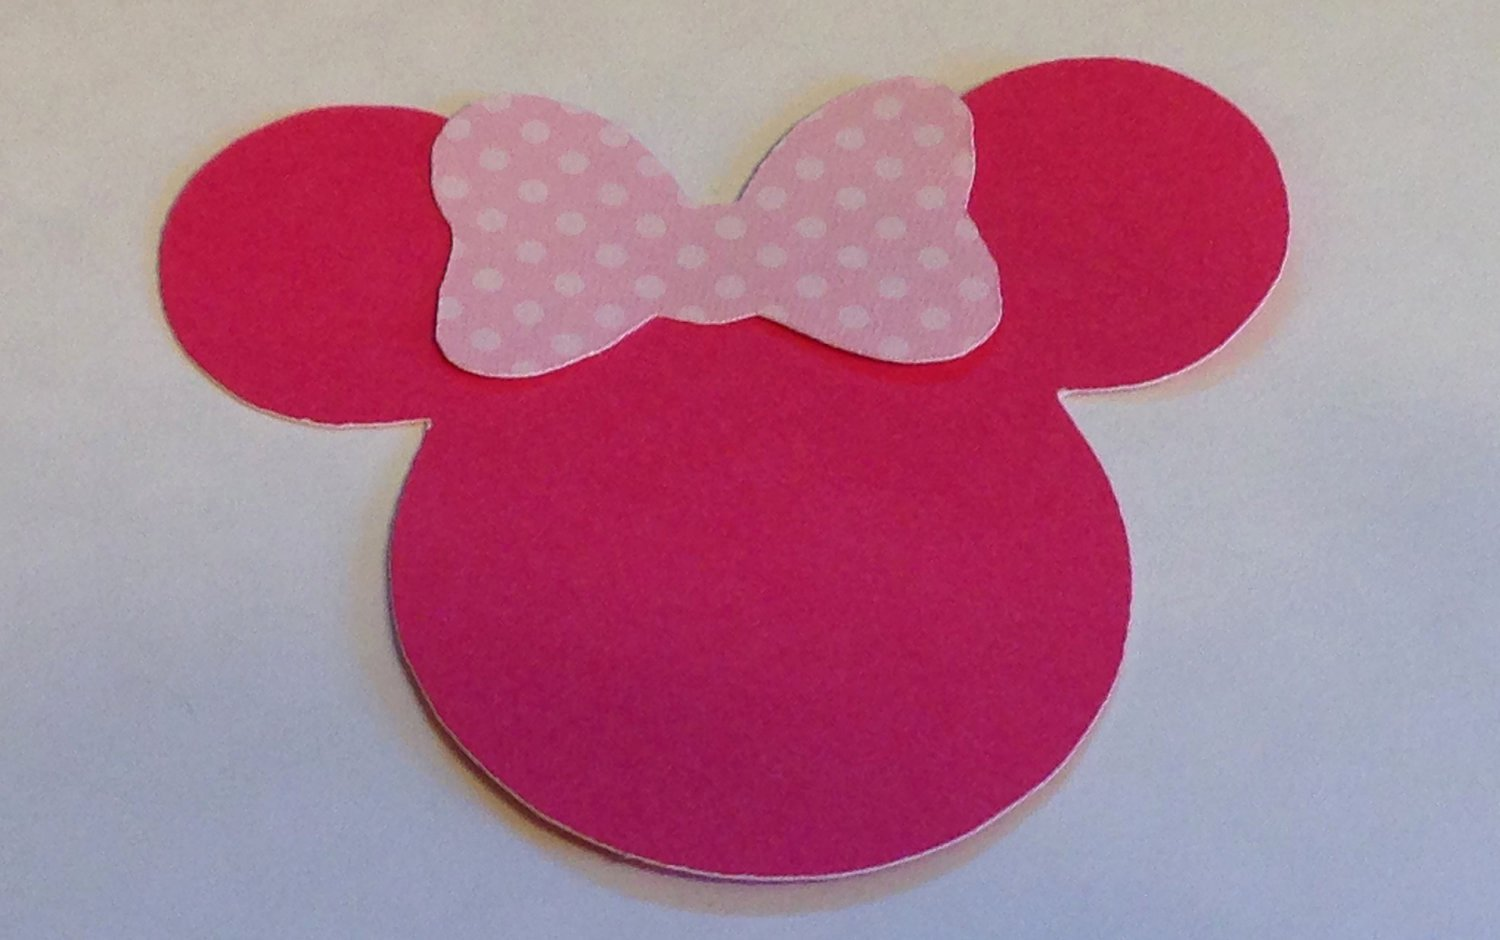 Minnie Mouse Cut Out Head Awesome 30 2 5 Minnie Mouse Head Silhouettes Die Cut Pink